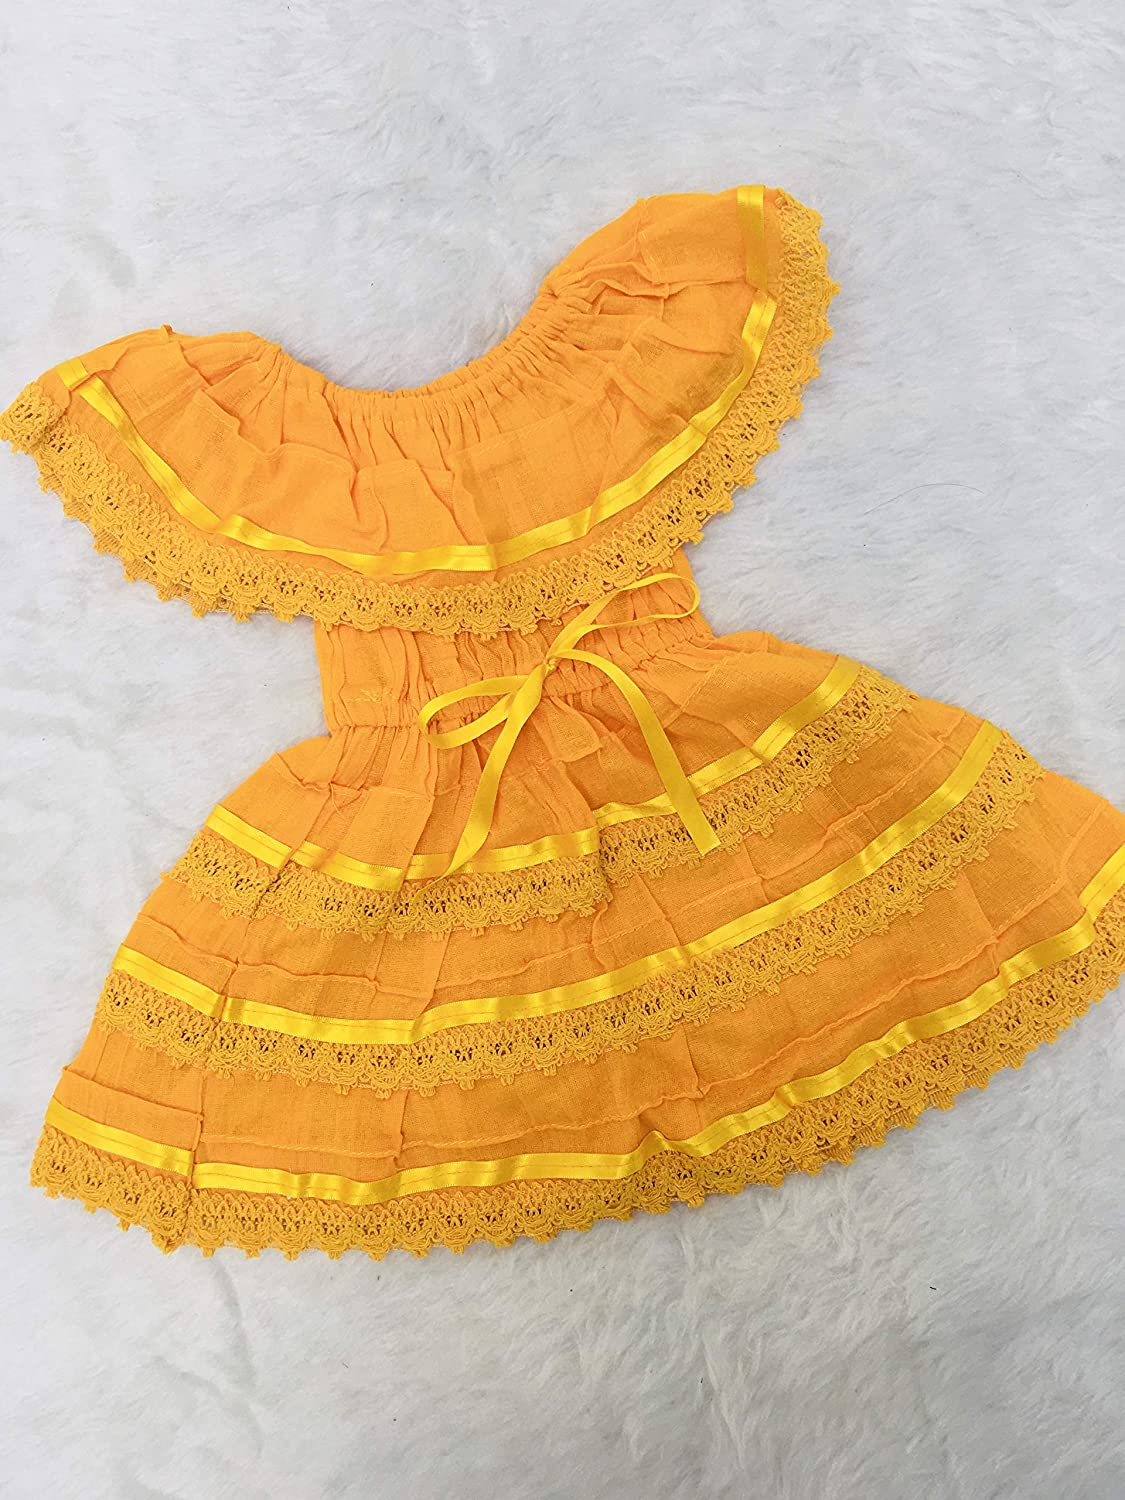 Campesino yellow dress trend rank for 2 old baby Max 76% OFF girl years